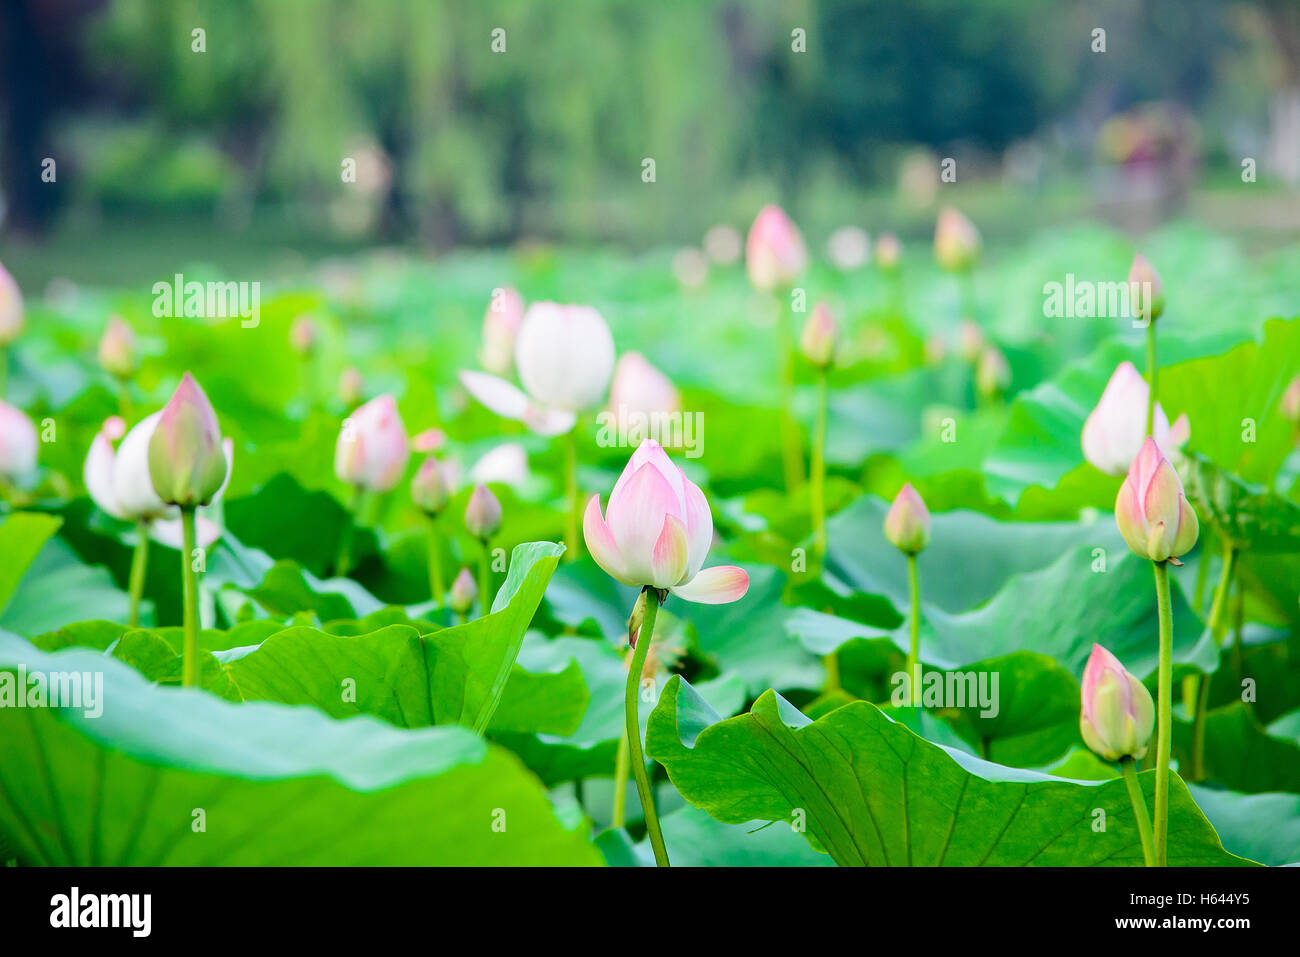 Lotus Flowers In Pond Stock Photos Lotus Flowers In Pond Stock